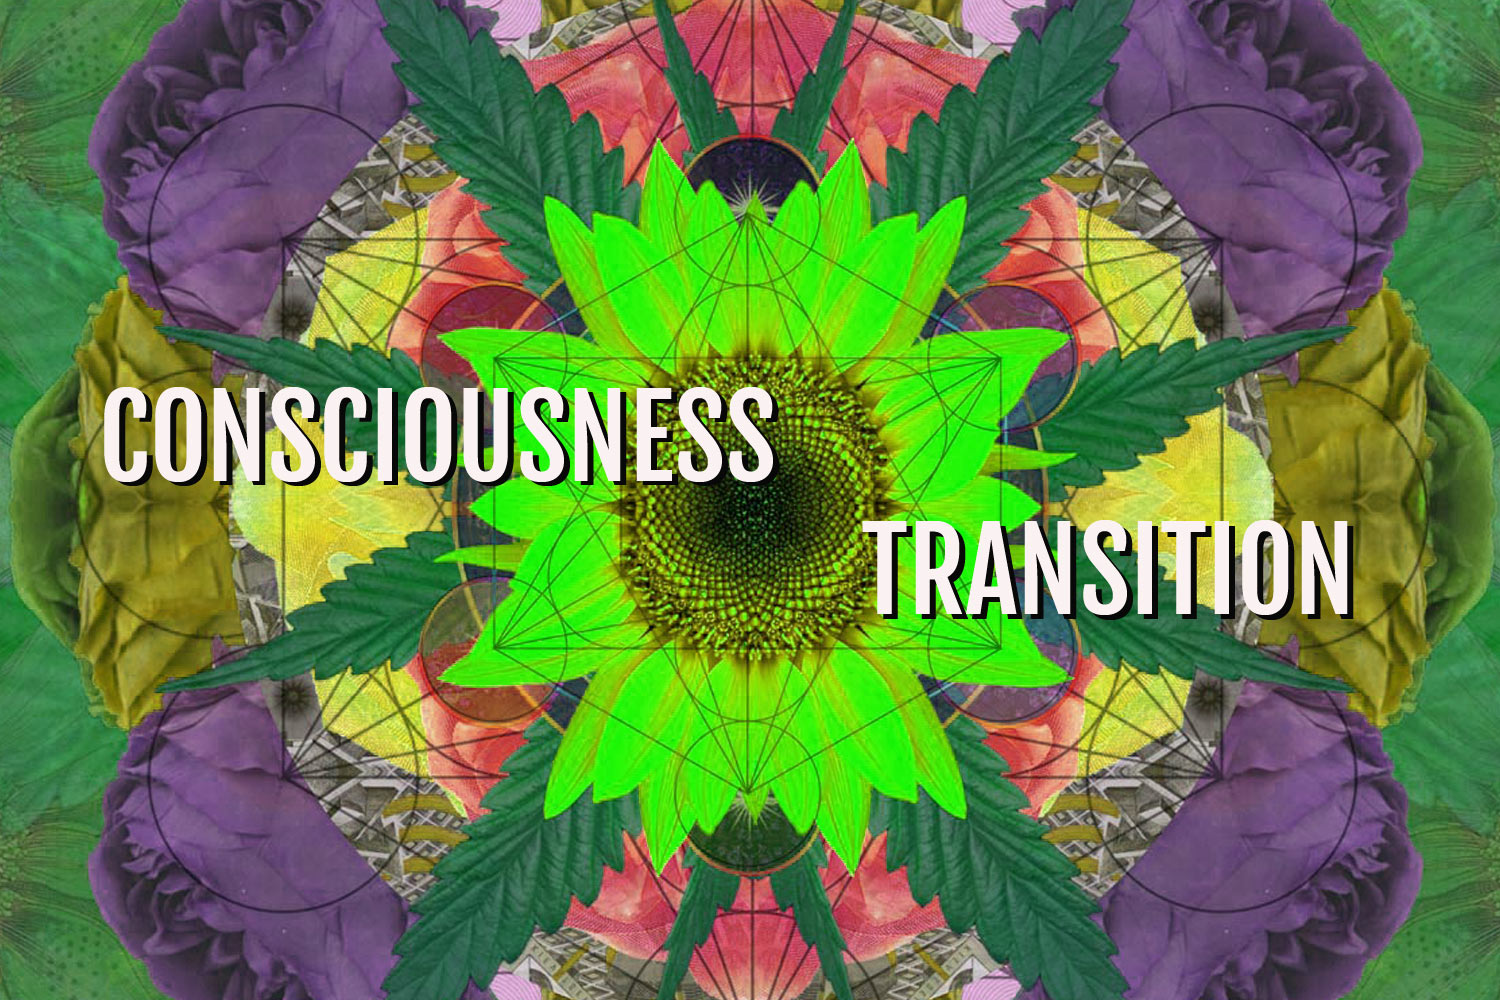 DIGITAL ART AMSTERDAM - Year review CONSCIOUSNESS TRANSITION